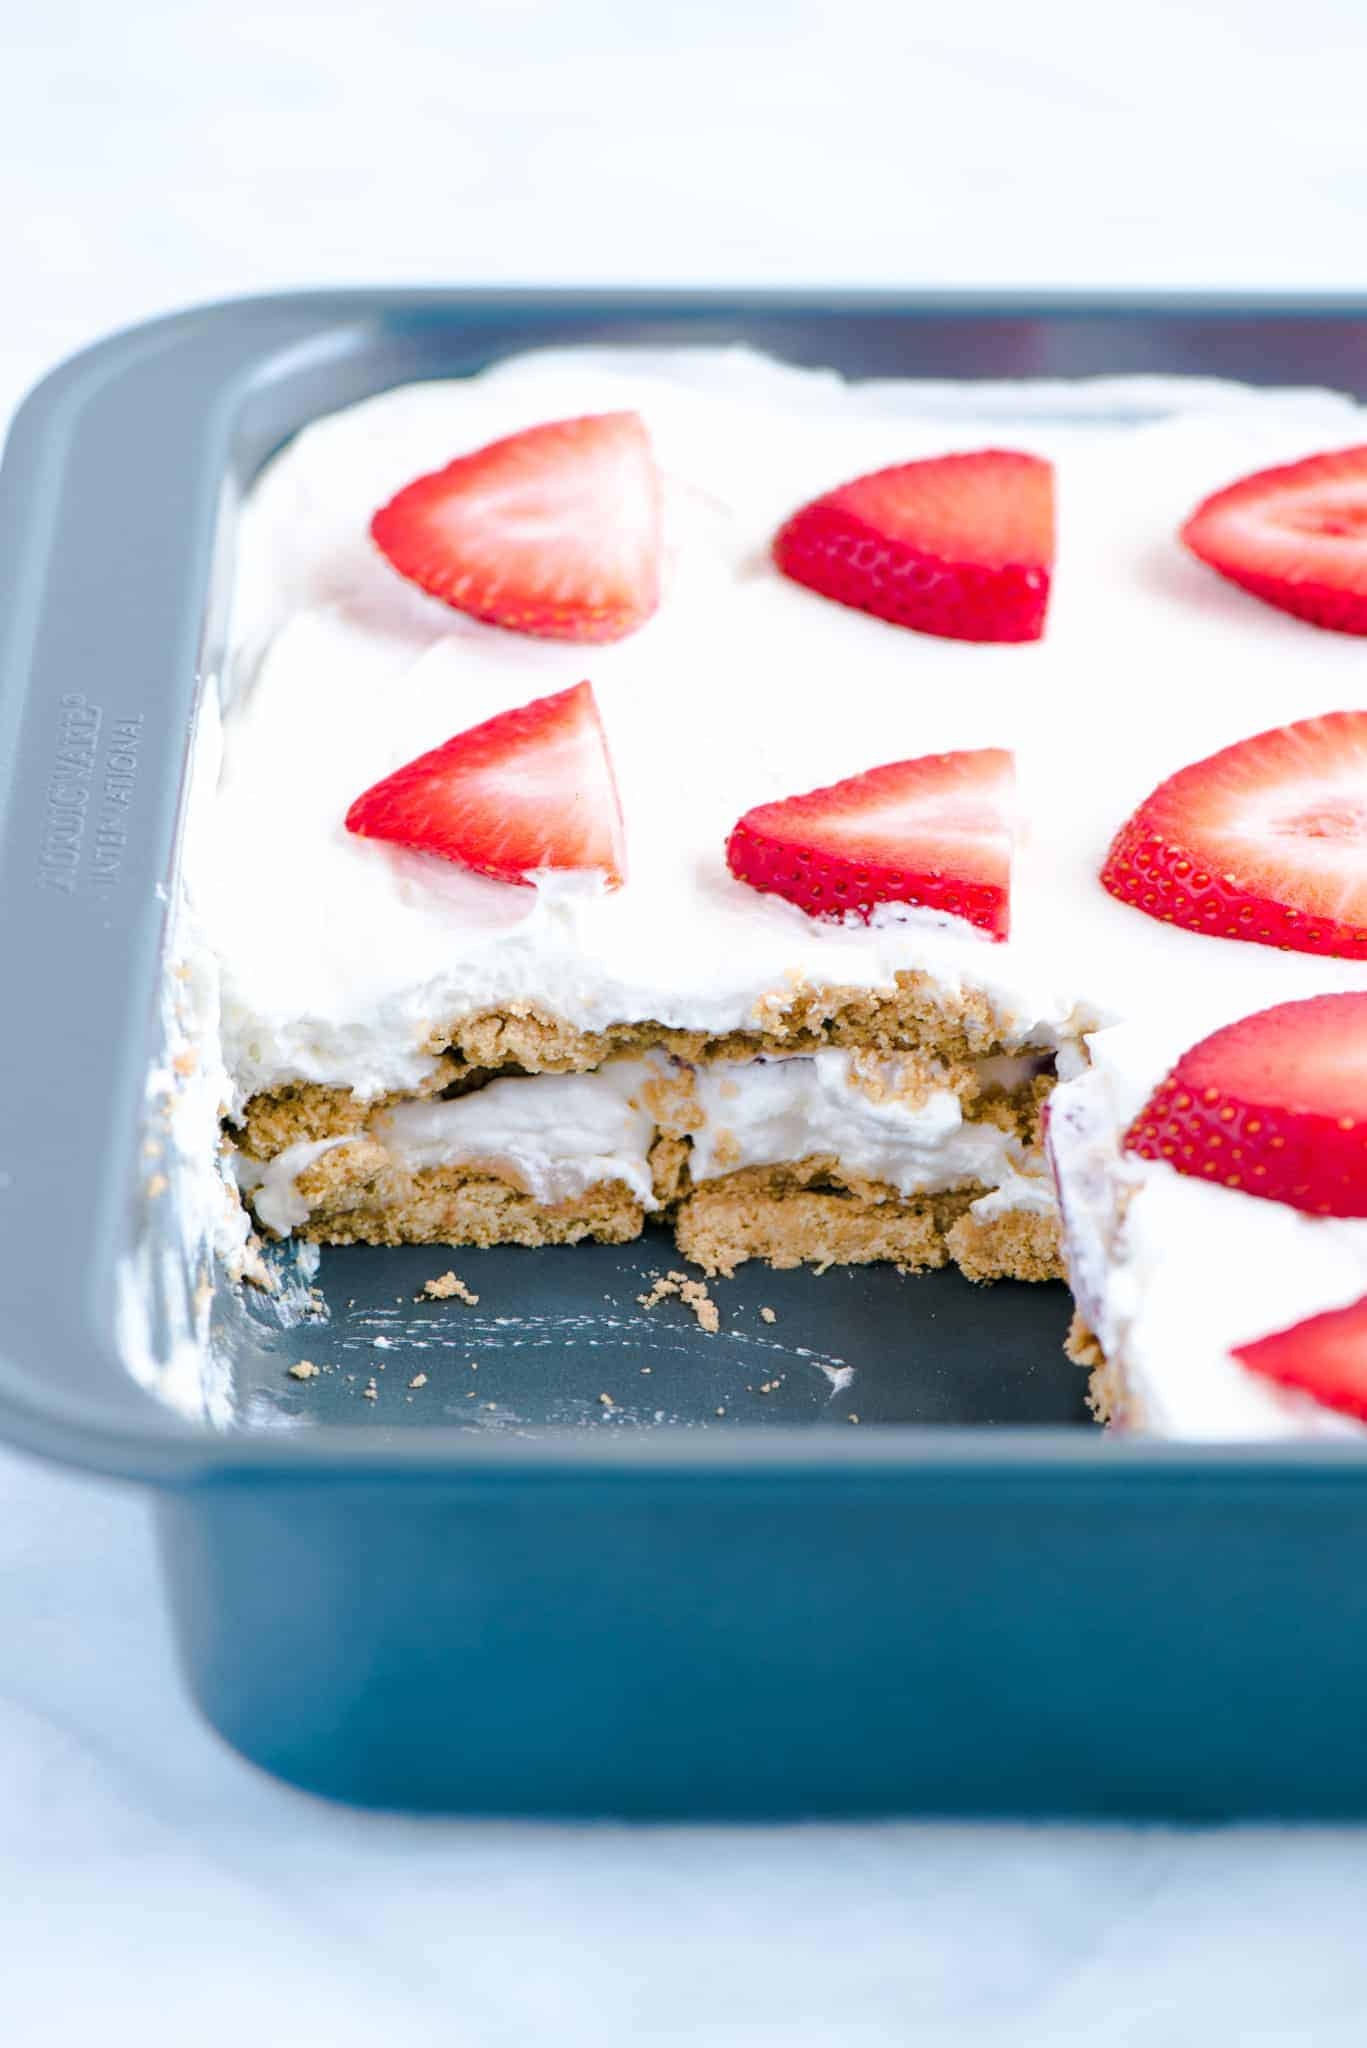 Gluten Free Strawberry Icebox Cake in a metal pan with a slice cut out